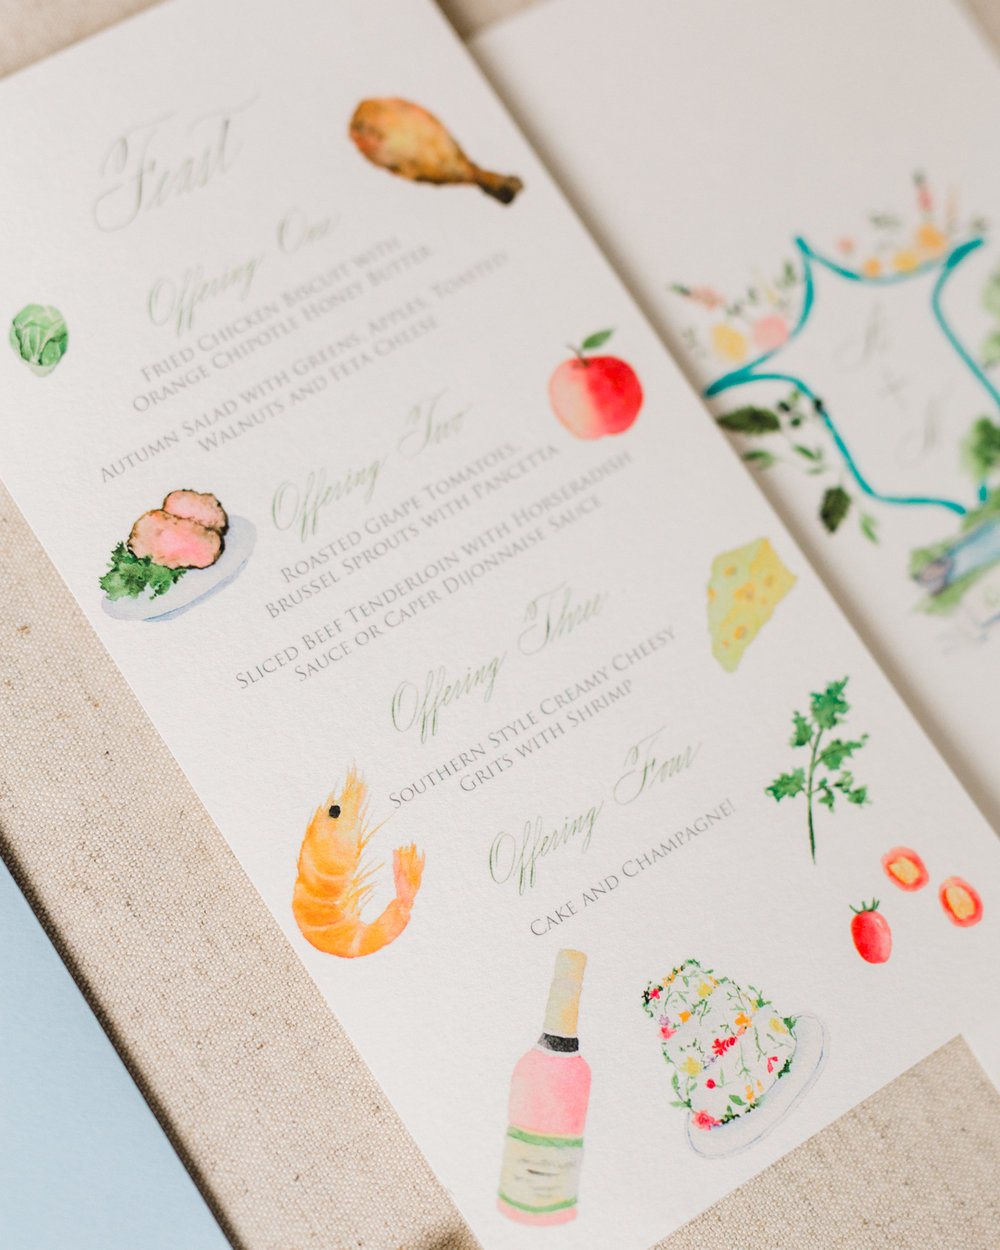 Watercolor wedding stationery 7.JPG